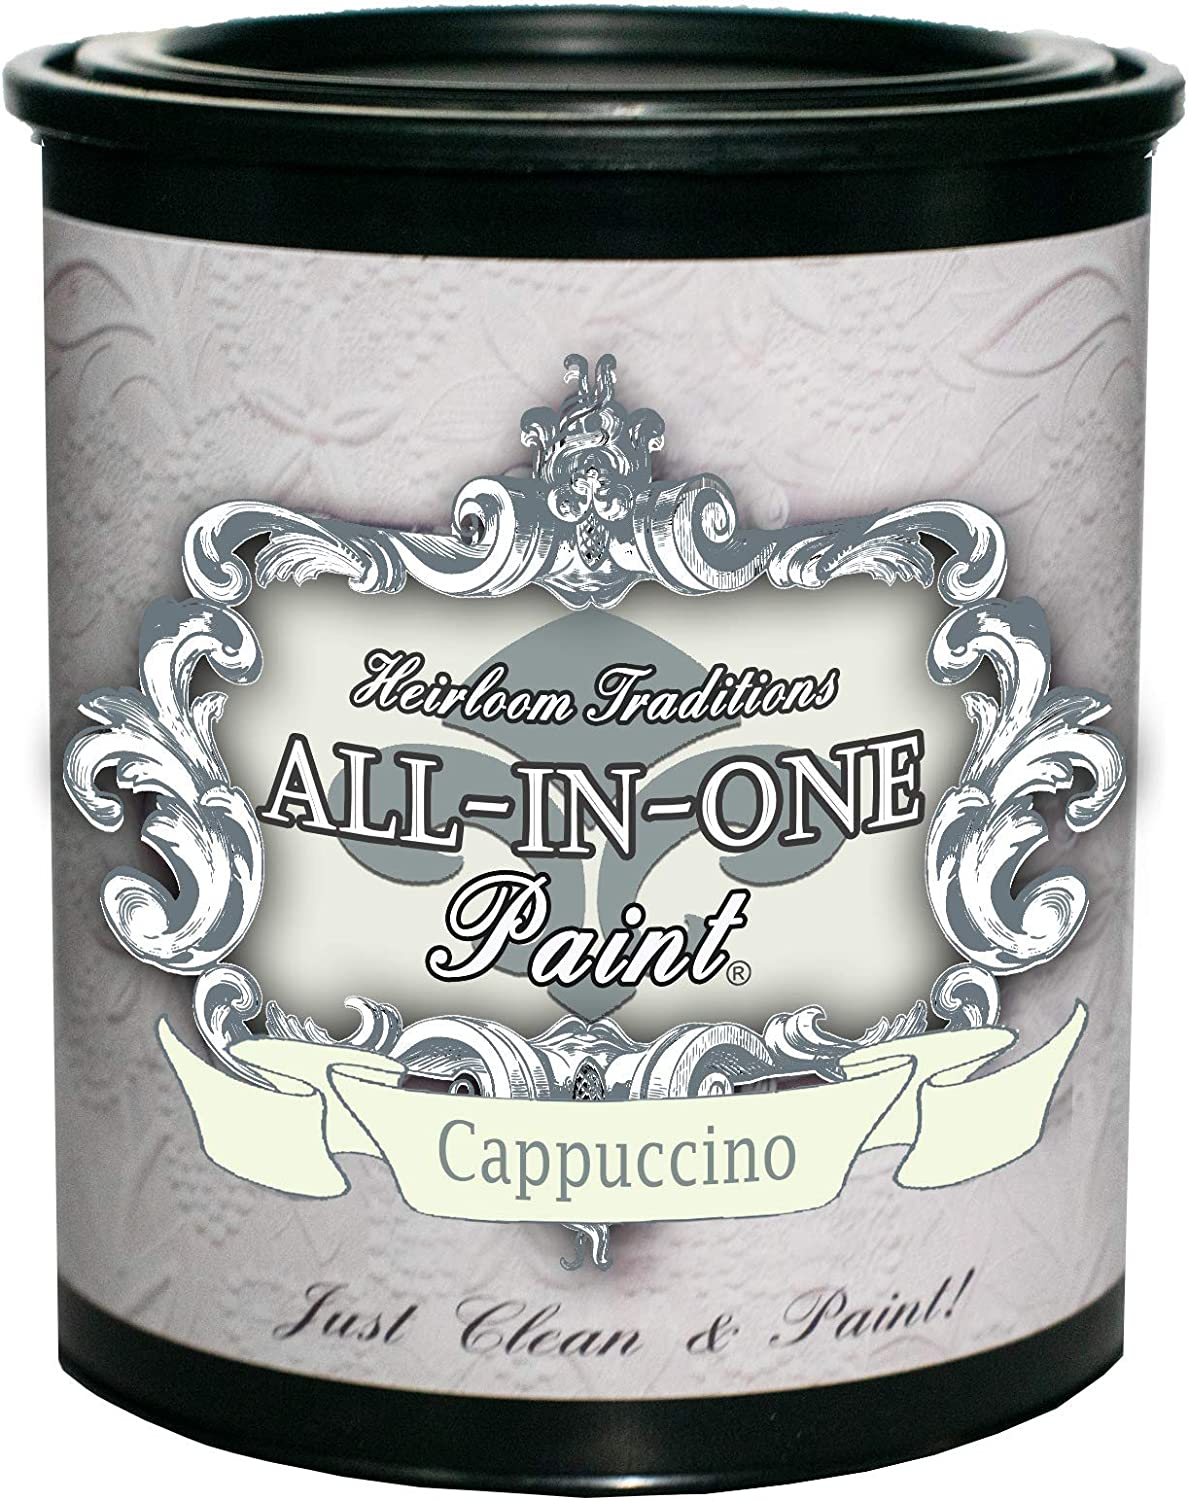 Cappuccino Many popular brands Finish Paint All stores are sold All-in-One